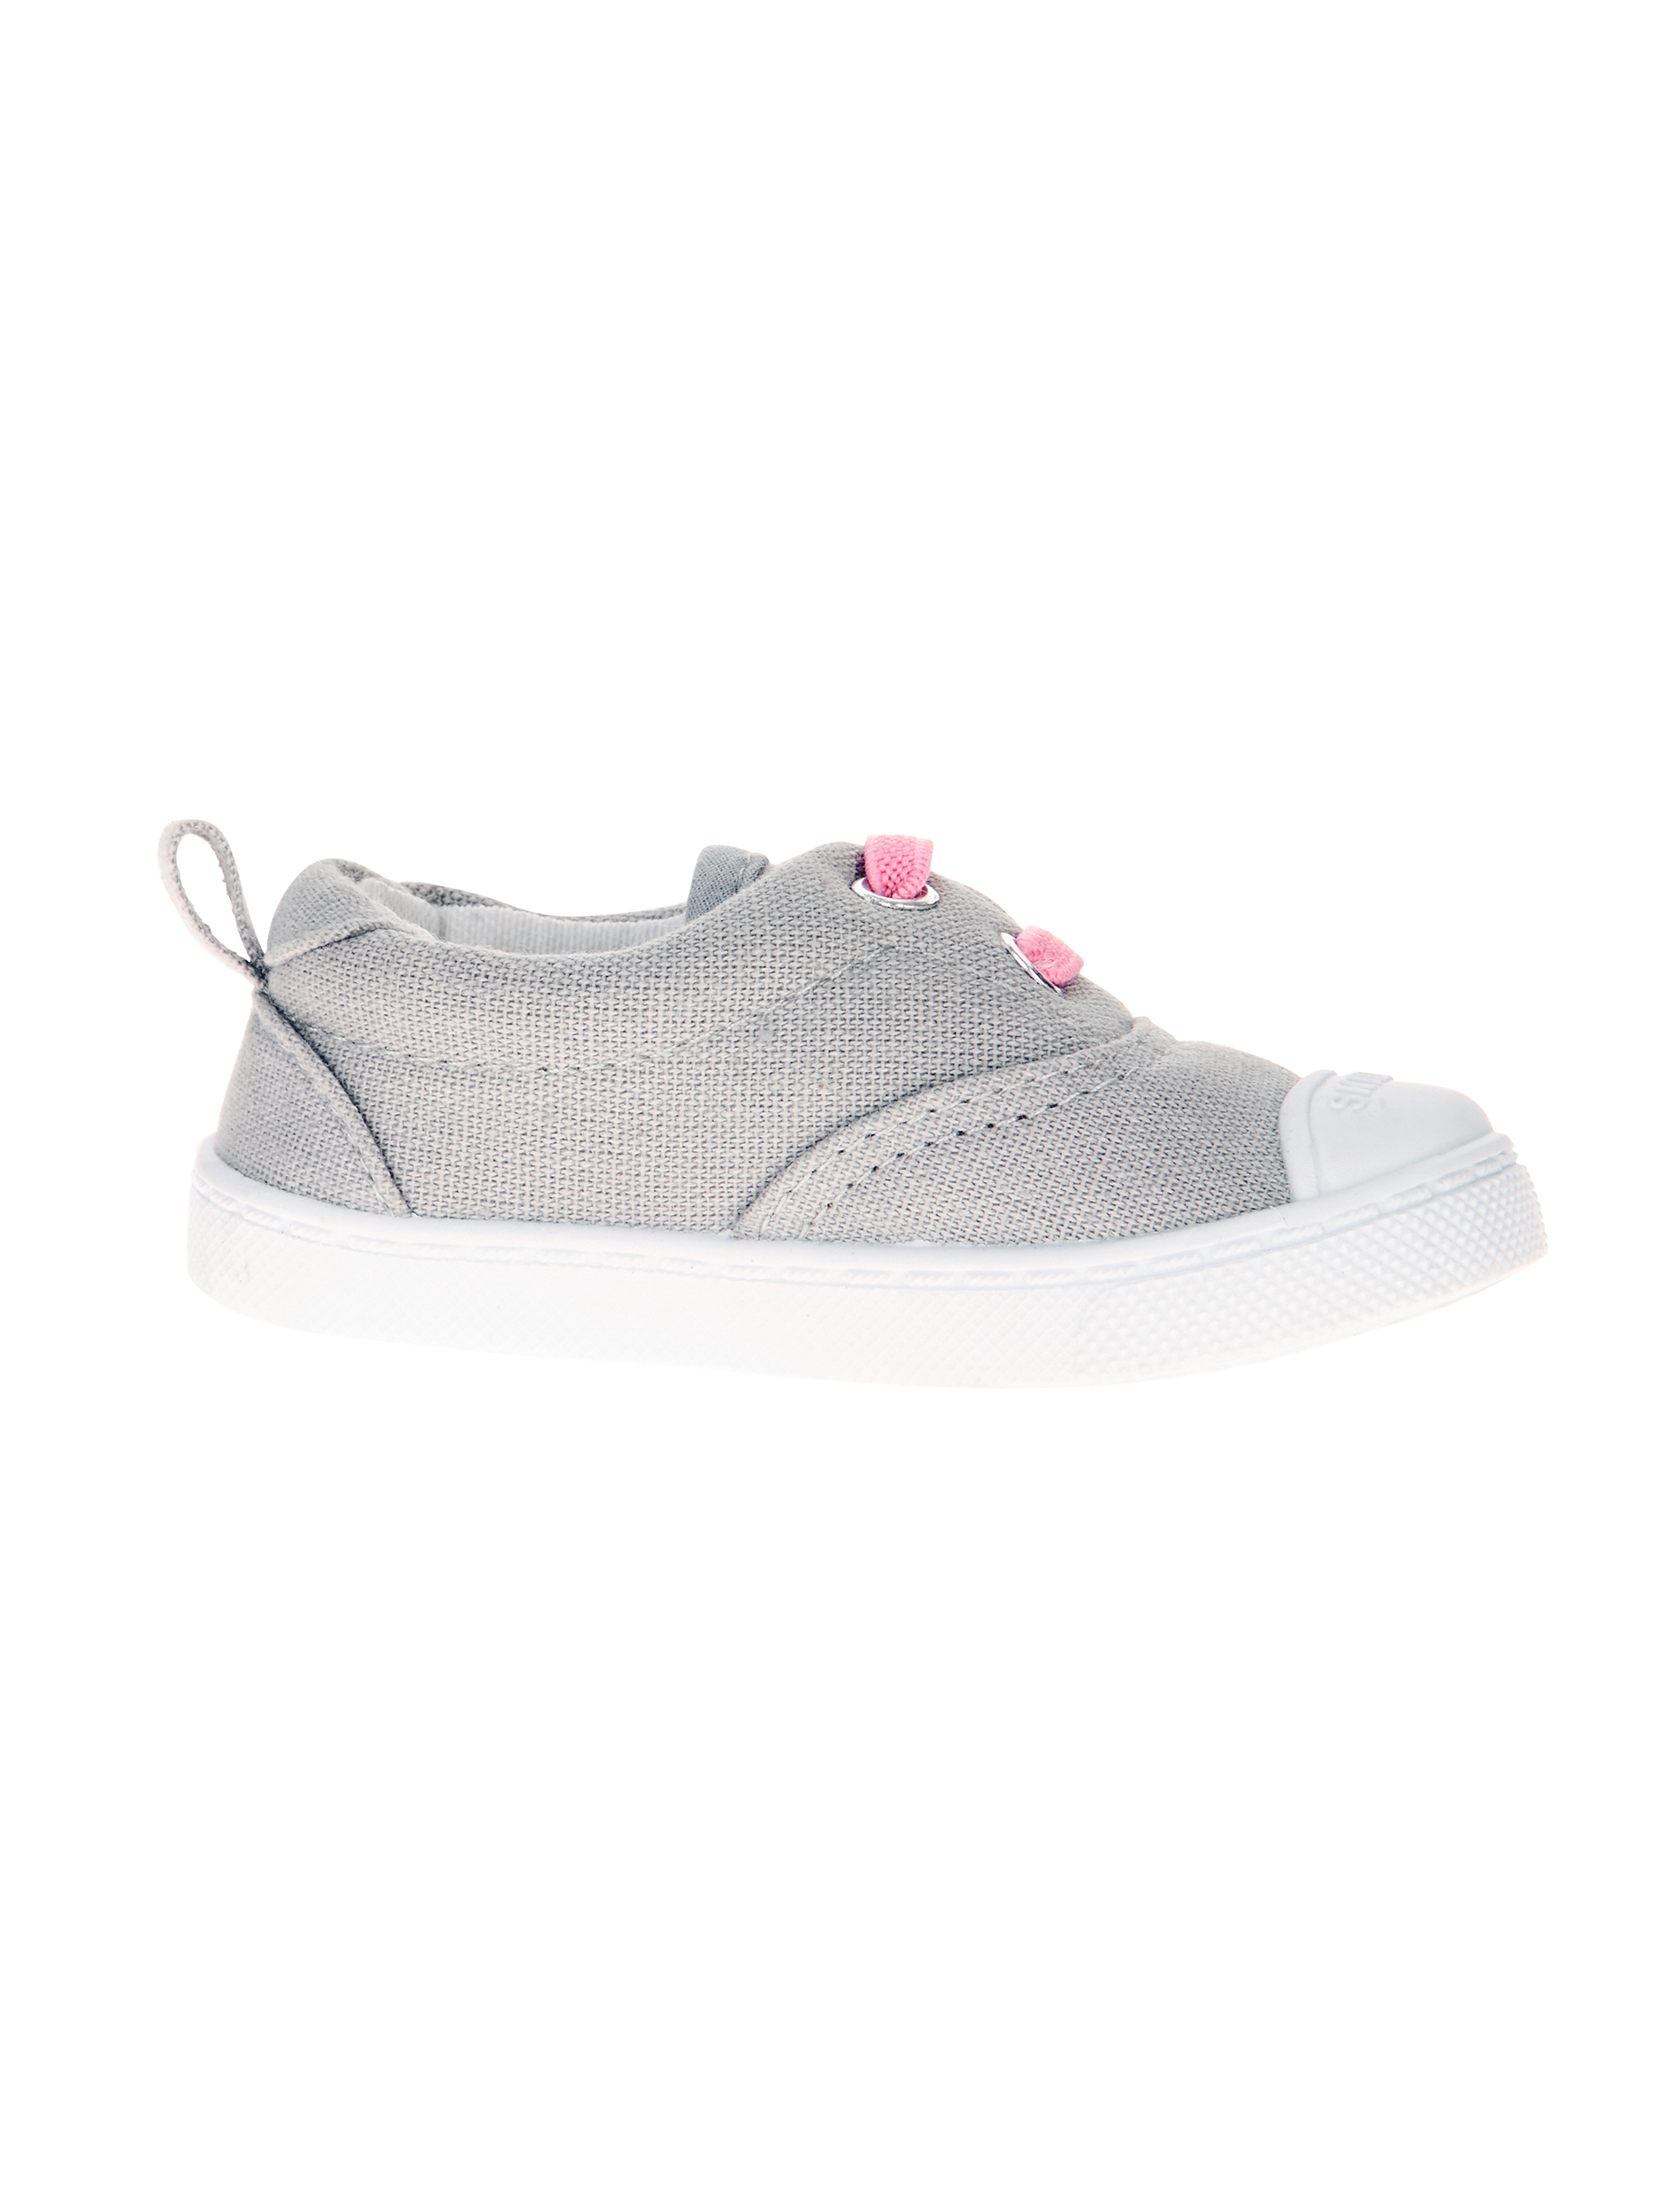 Baby Girl's Faux Lace Slip-On Casual Shoe